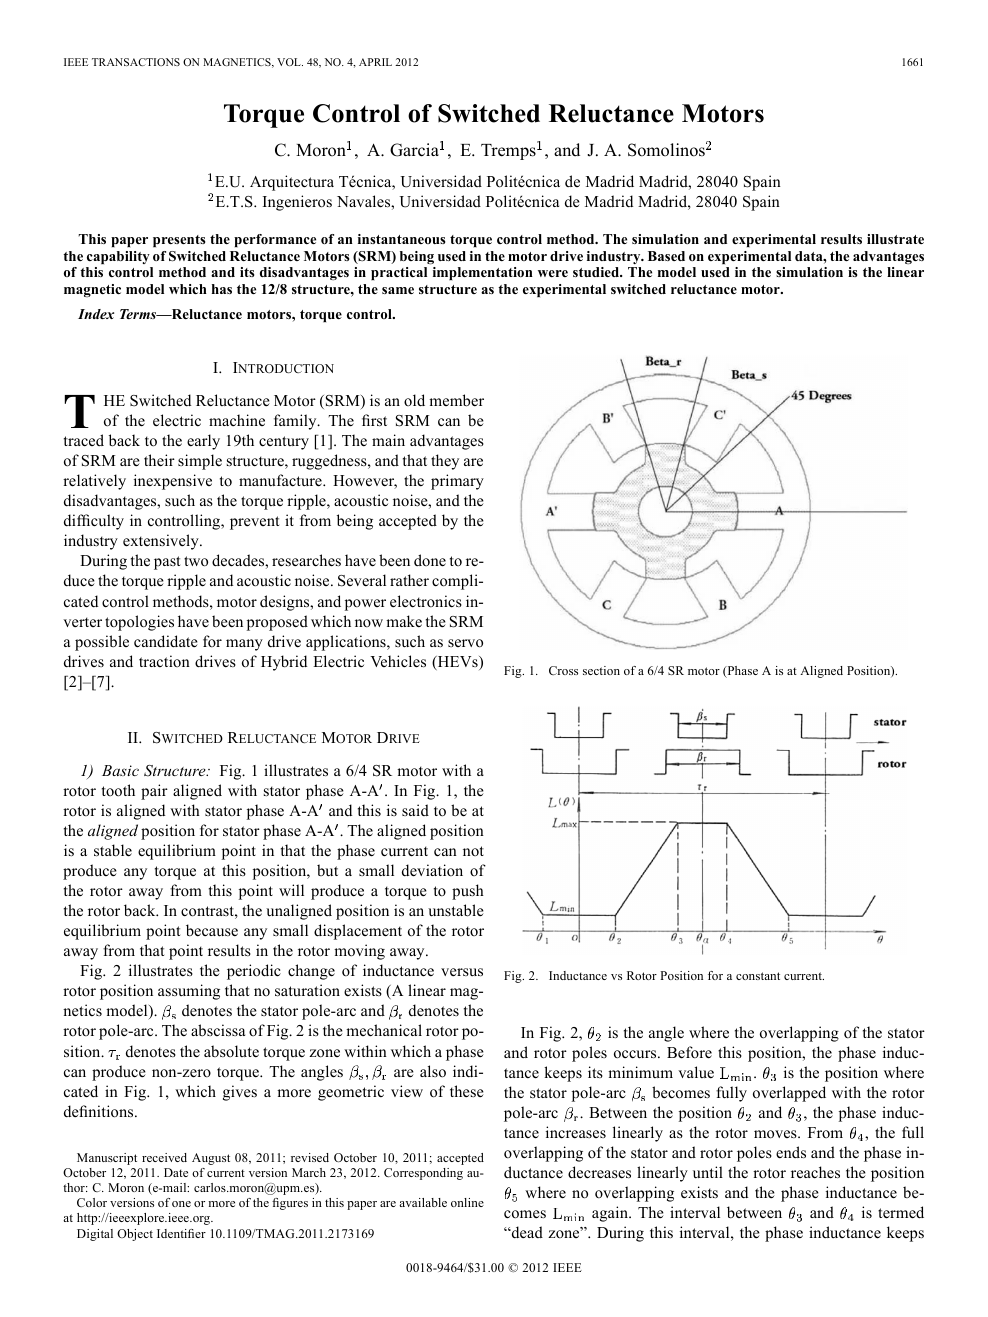 Torque Control of Switched Reluctance Motors – topic of